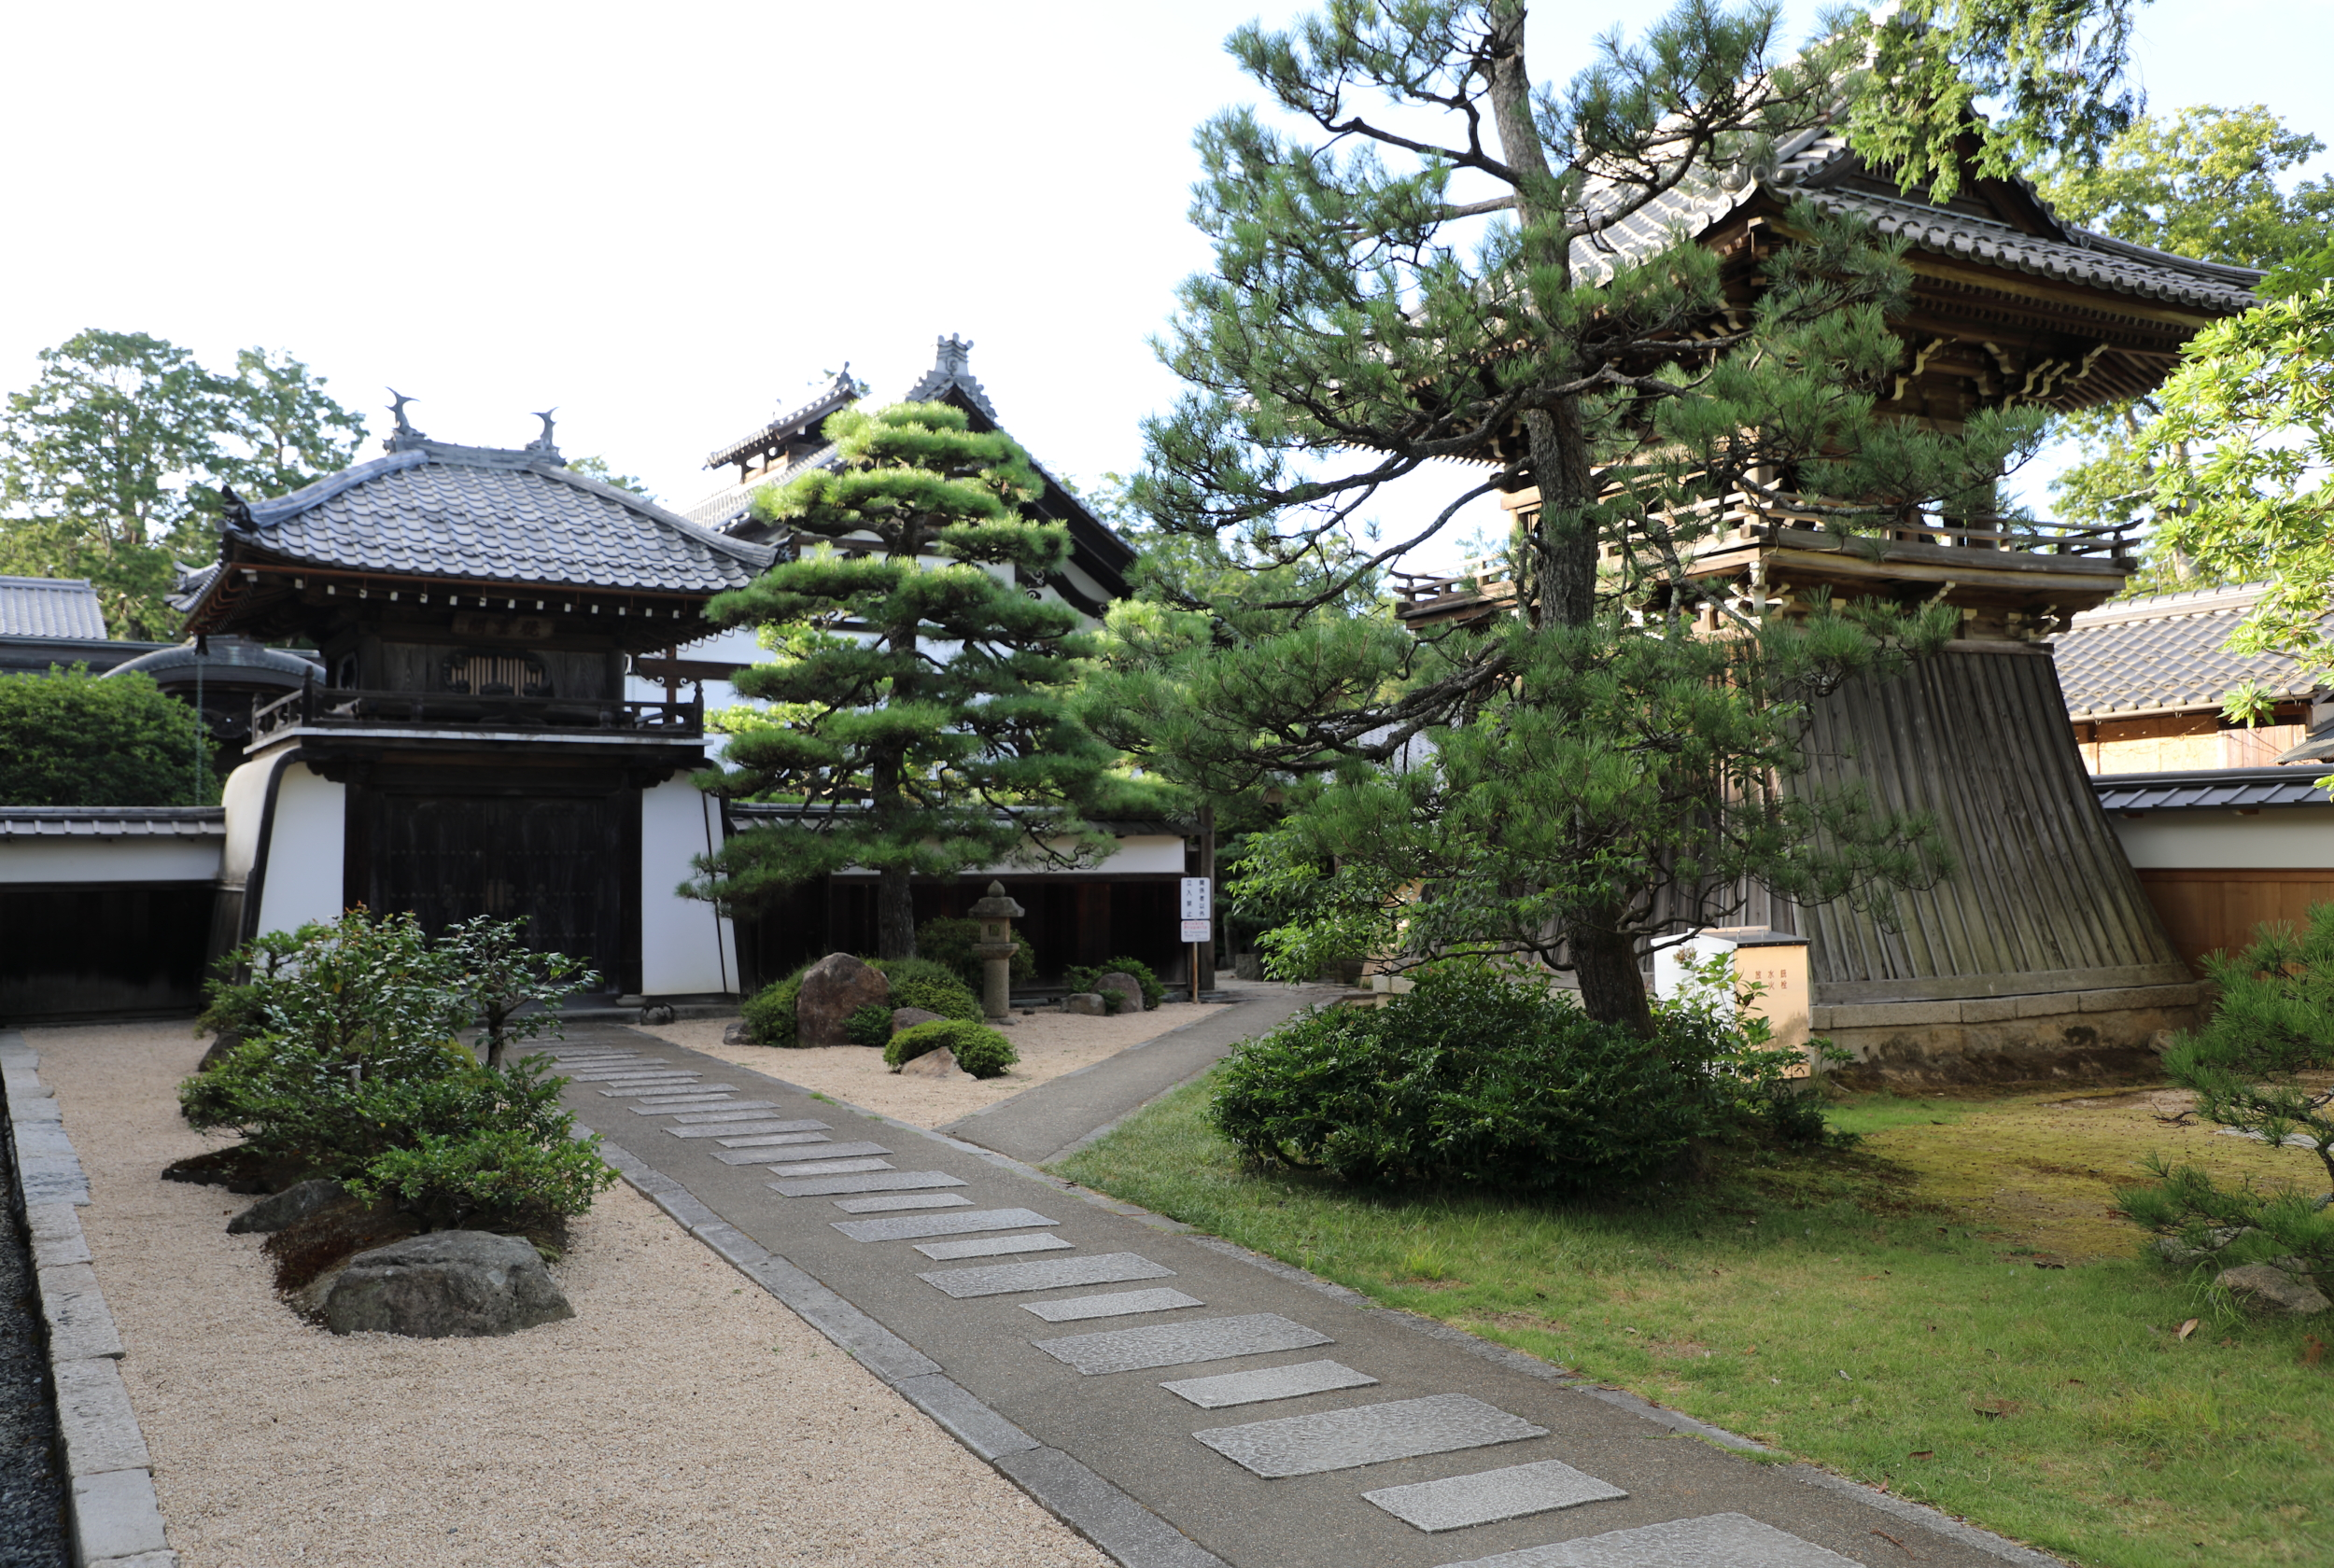 Built in 1762 on a small peninsula at the top of the village of Amanohashidate, Chinoji Temple is one of three temples in Japan dedicated to the bodhisattva of wisdom.